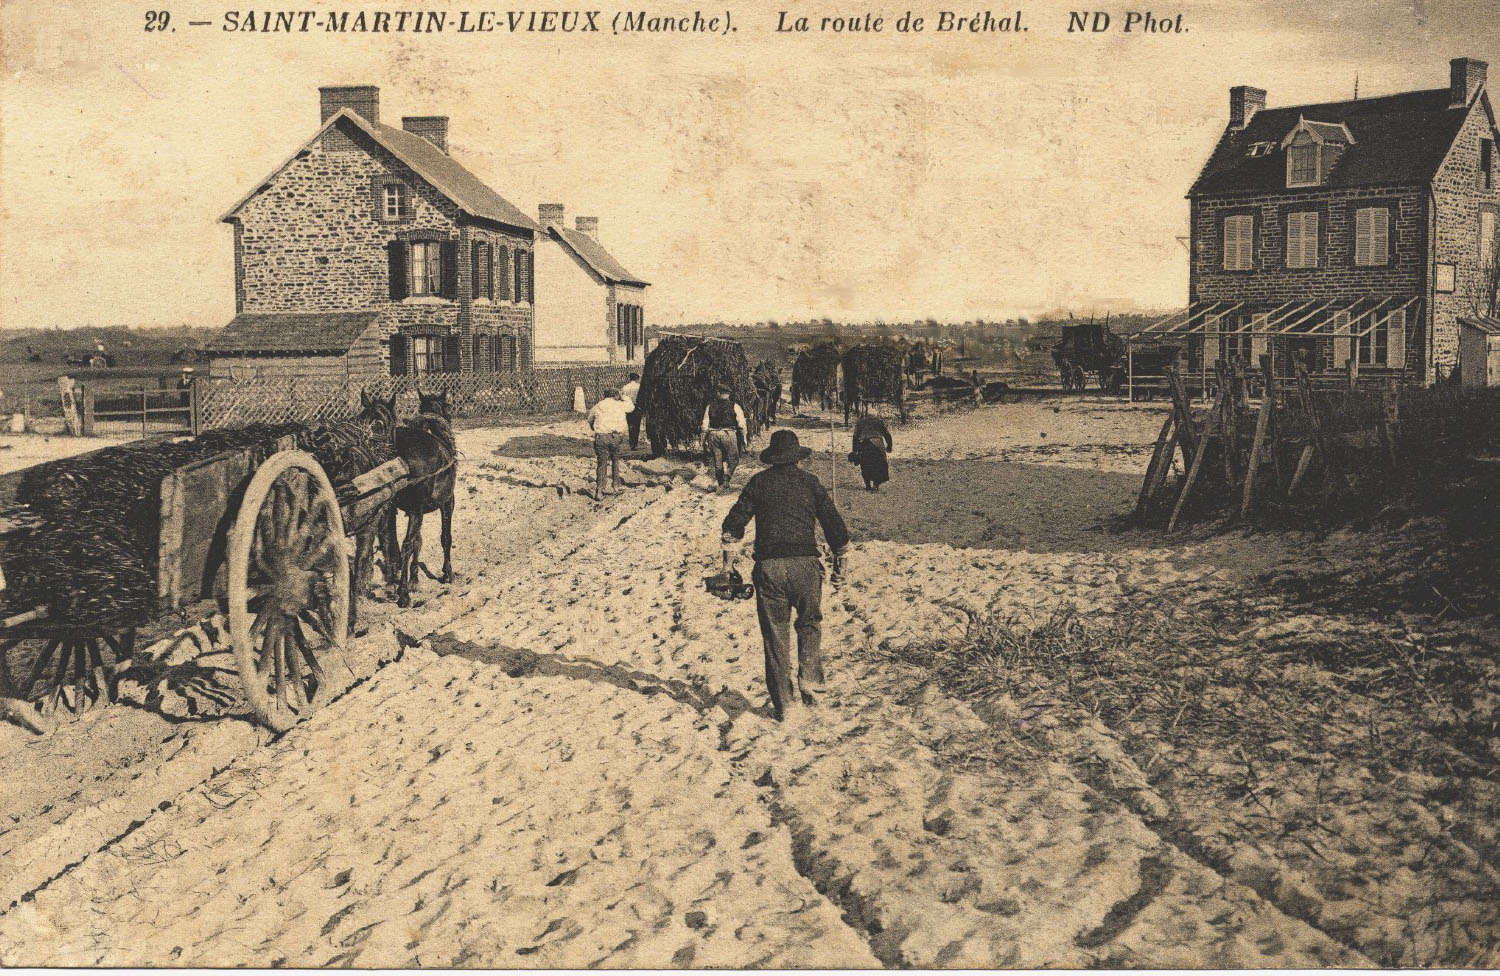 1911 St Martin Ramassage Varech 2 © collection Hervé Cleraux